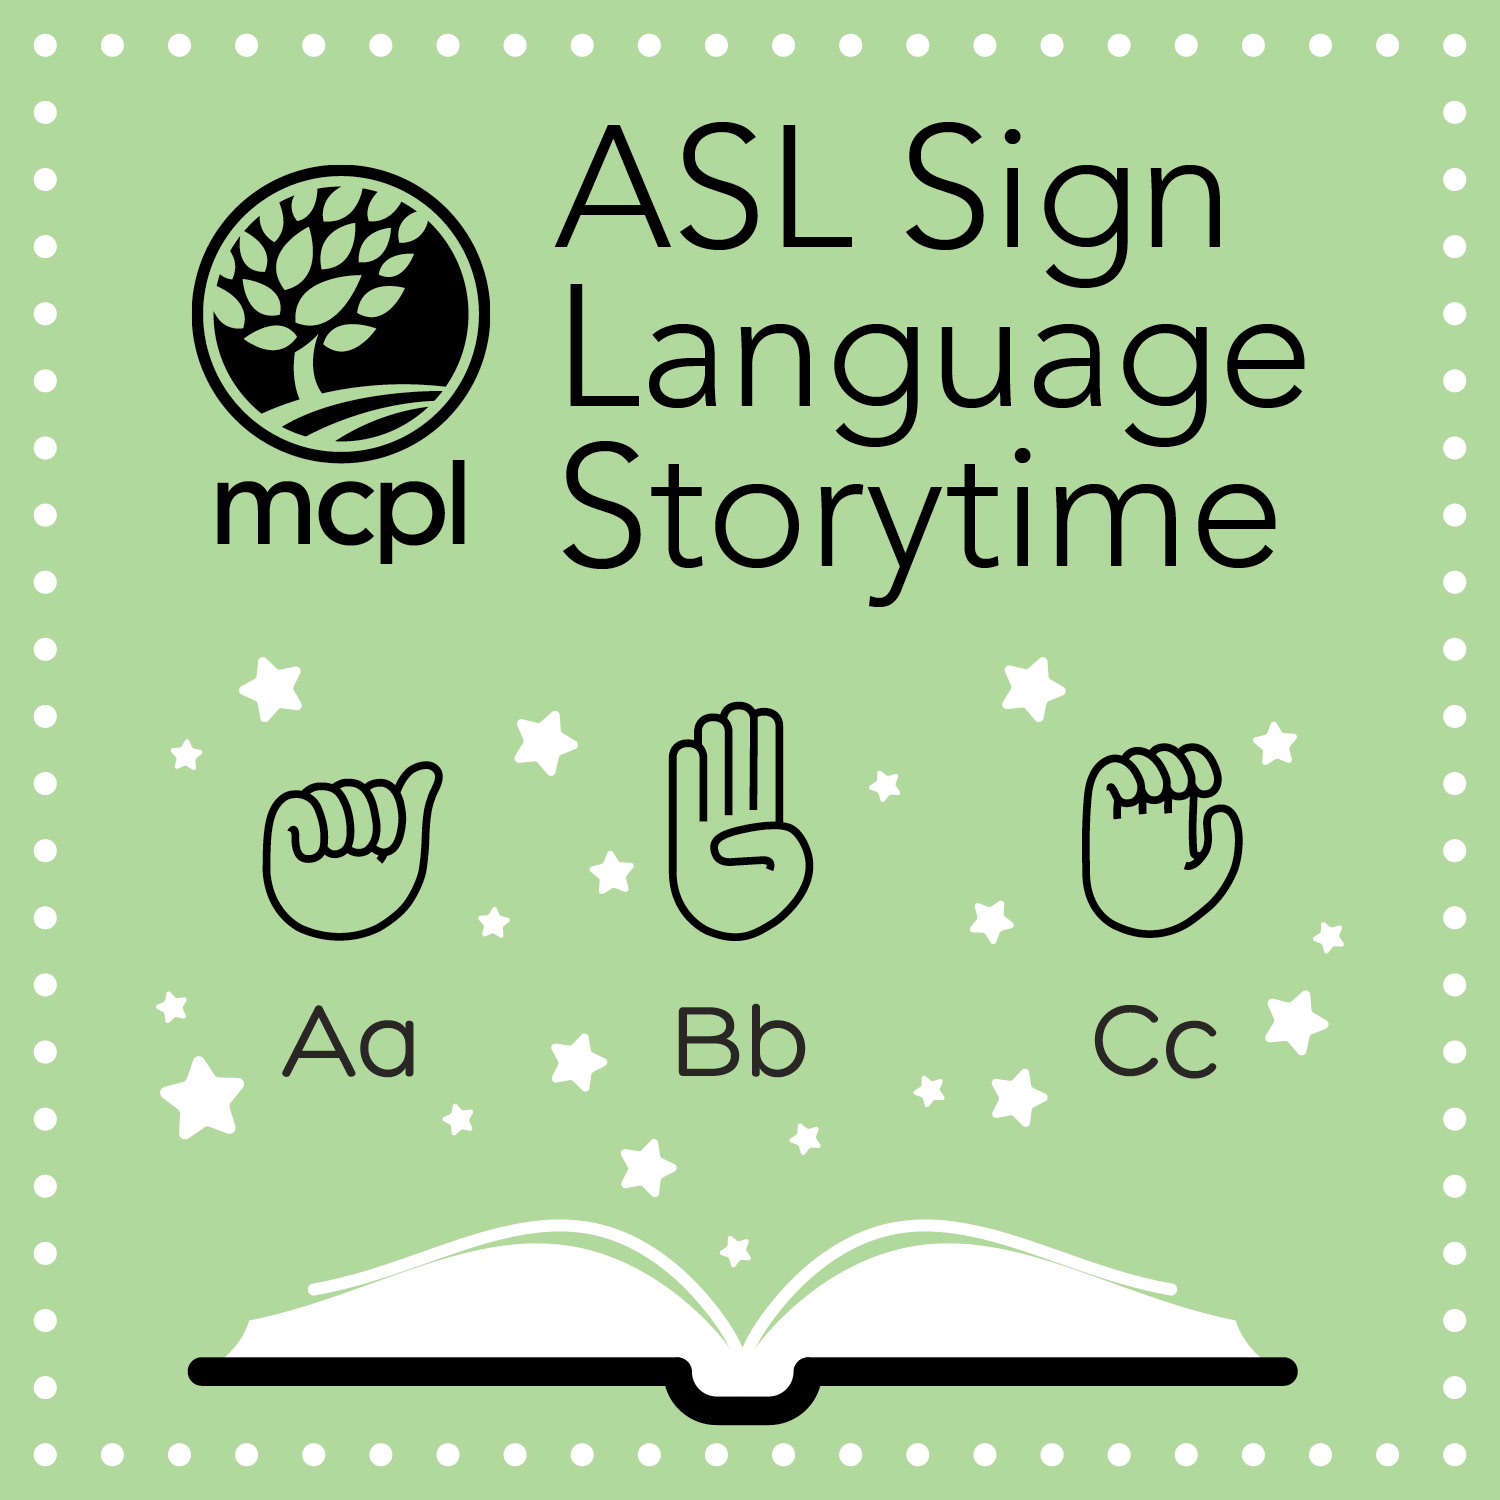 ASL Sign Language Storytime